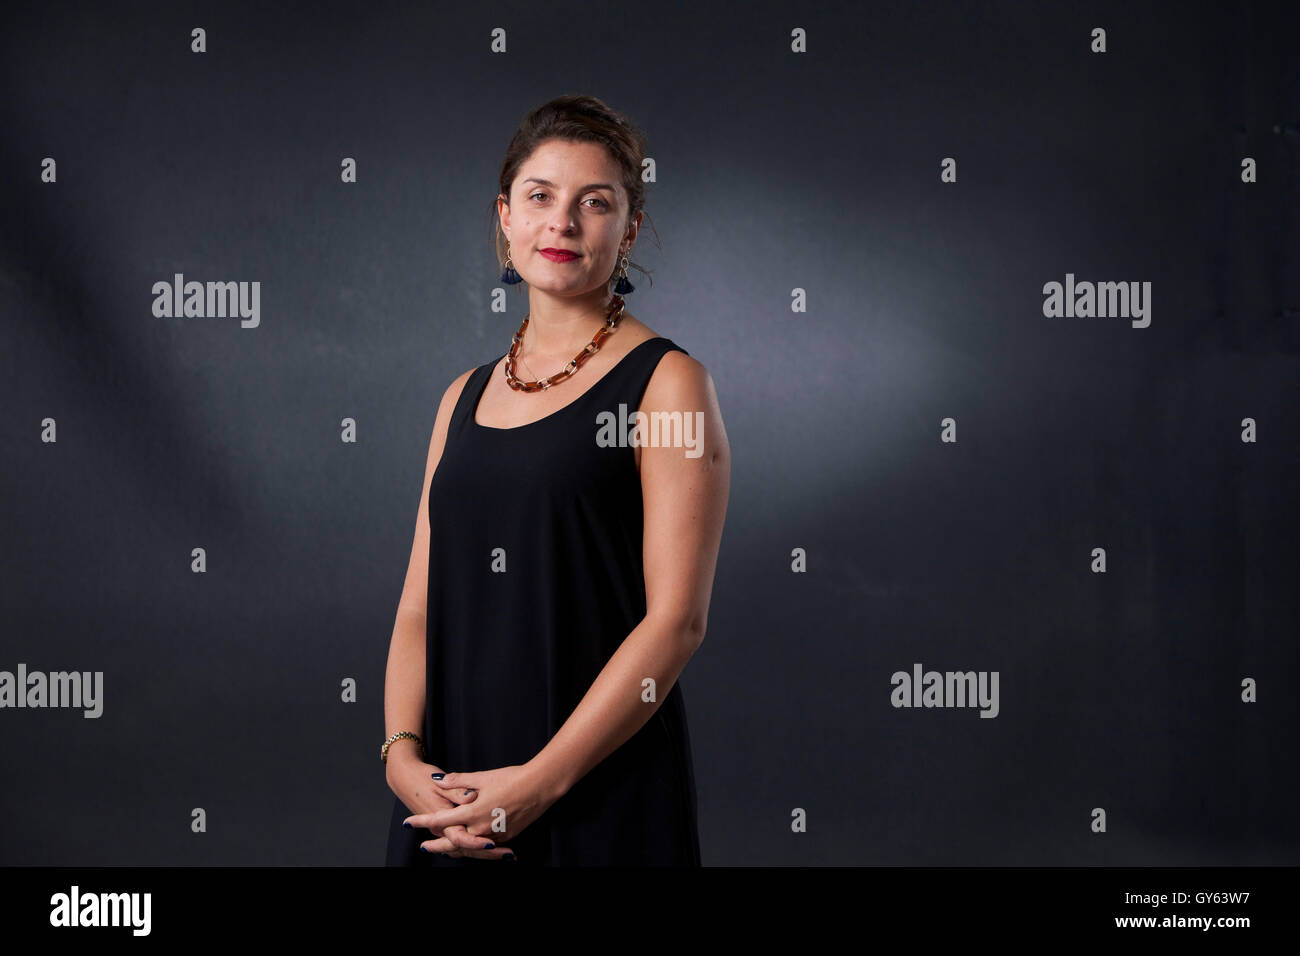 Jessie Burton, the English author and actress, at the Edinburgh International Book Festival. Edinburgh, Scotland. - Stock Image